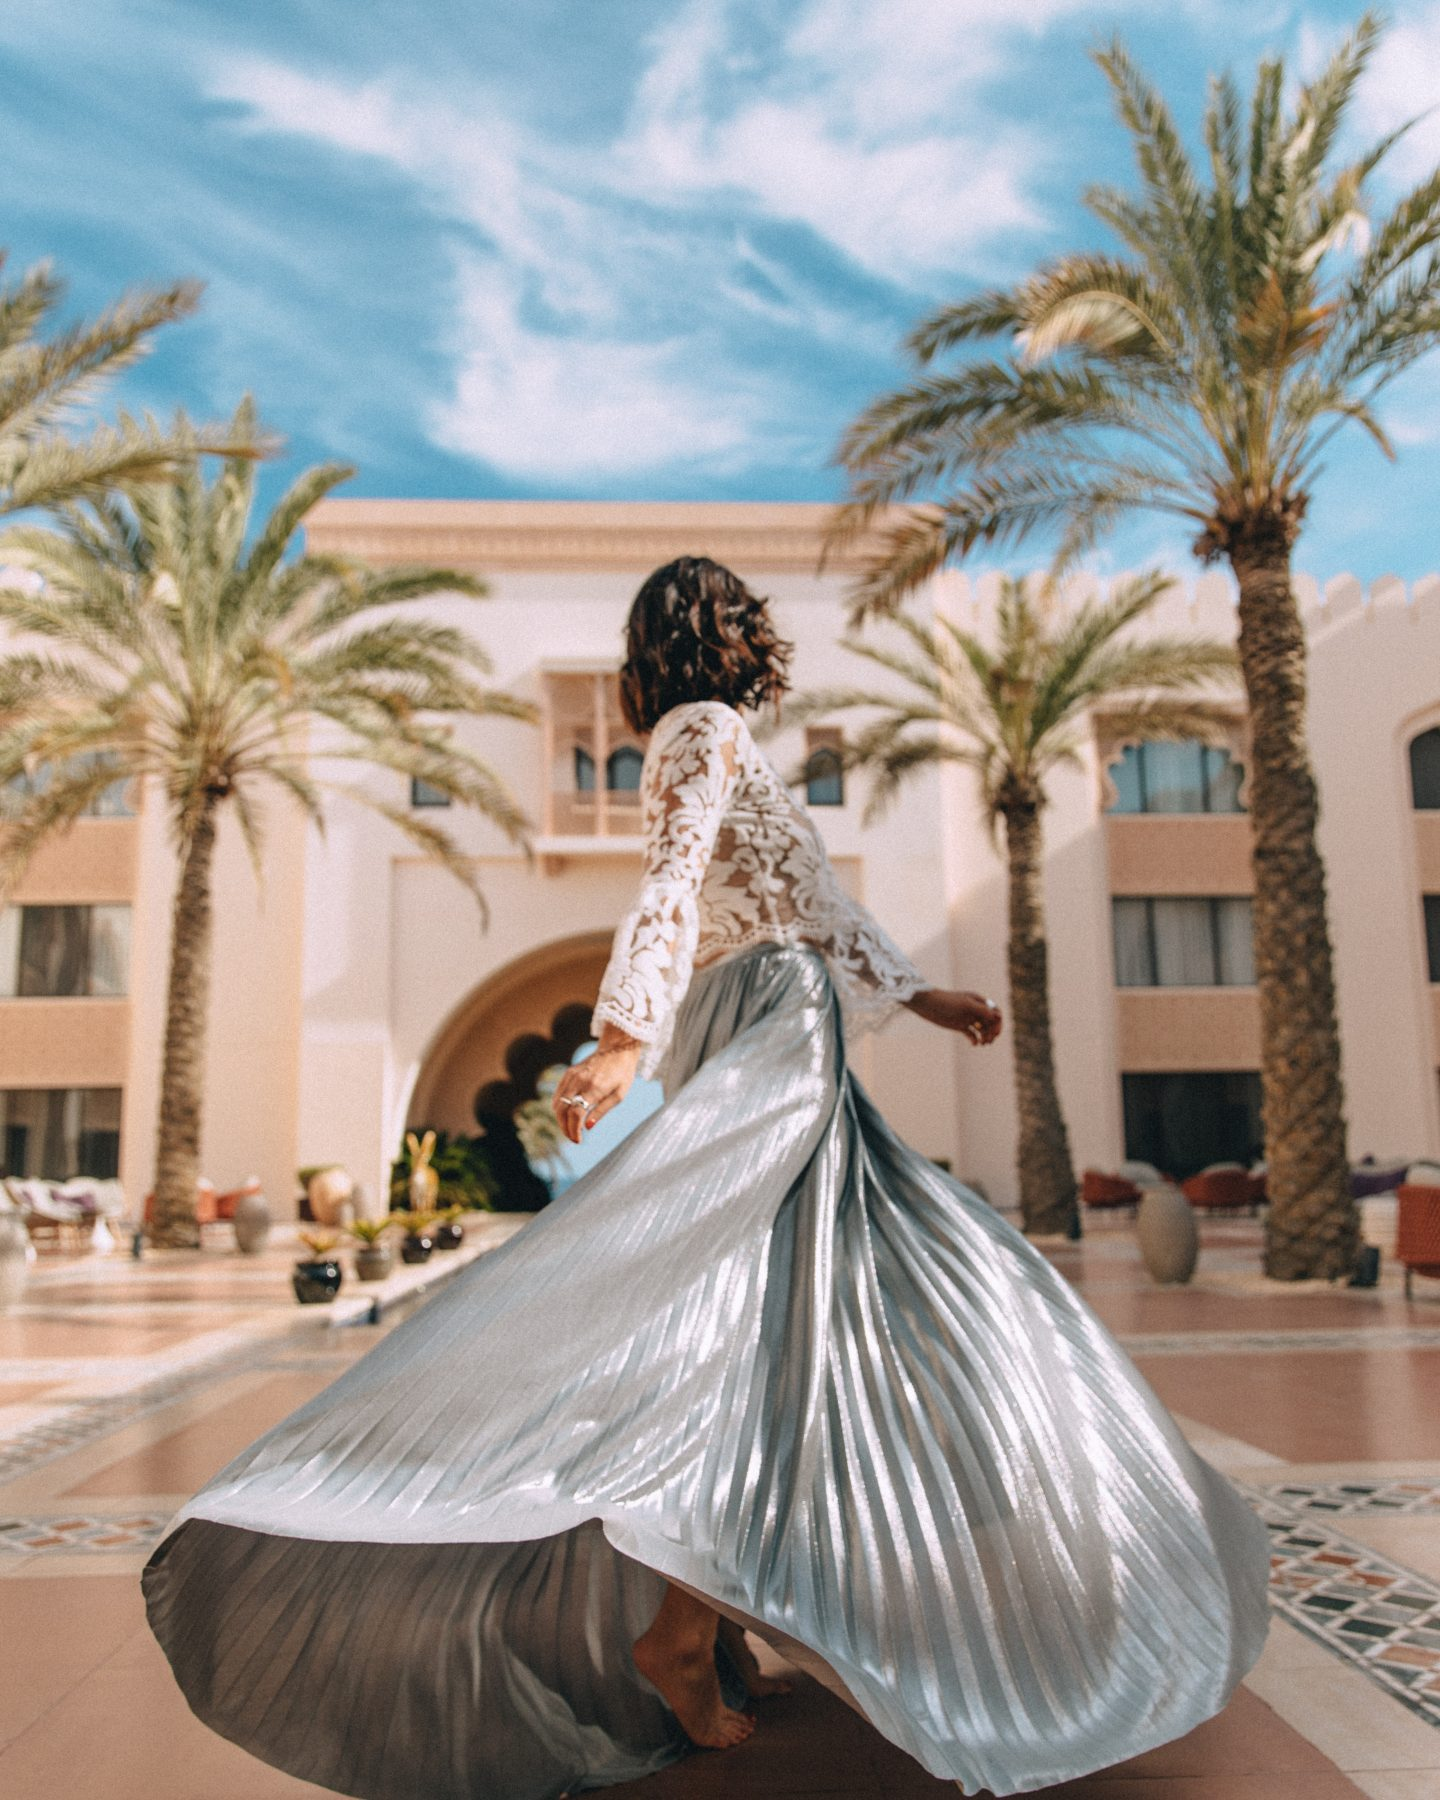 A woman twirling at Shangri-La Al Husn in Muscat, Oman